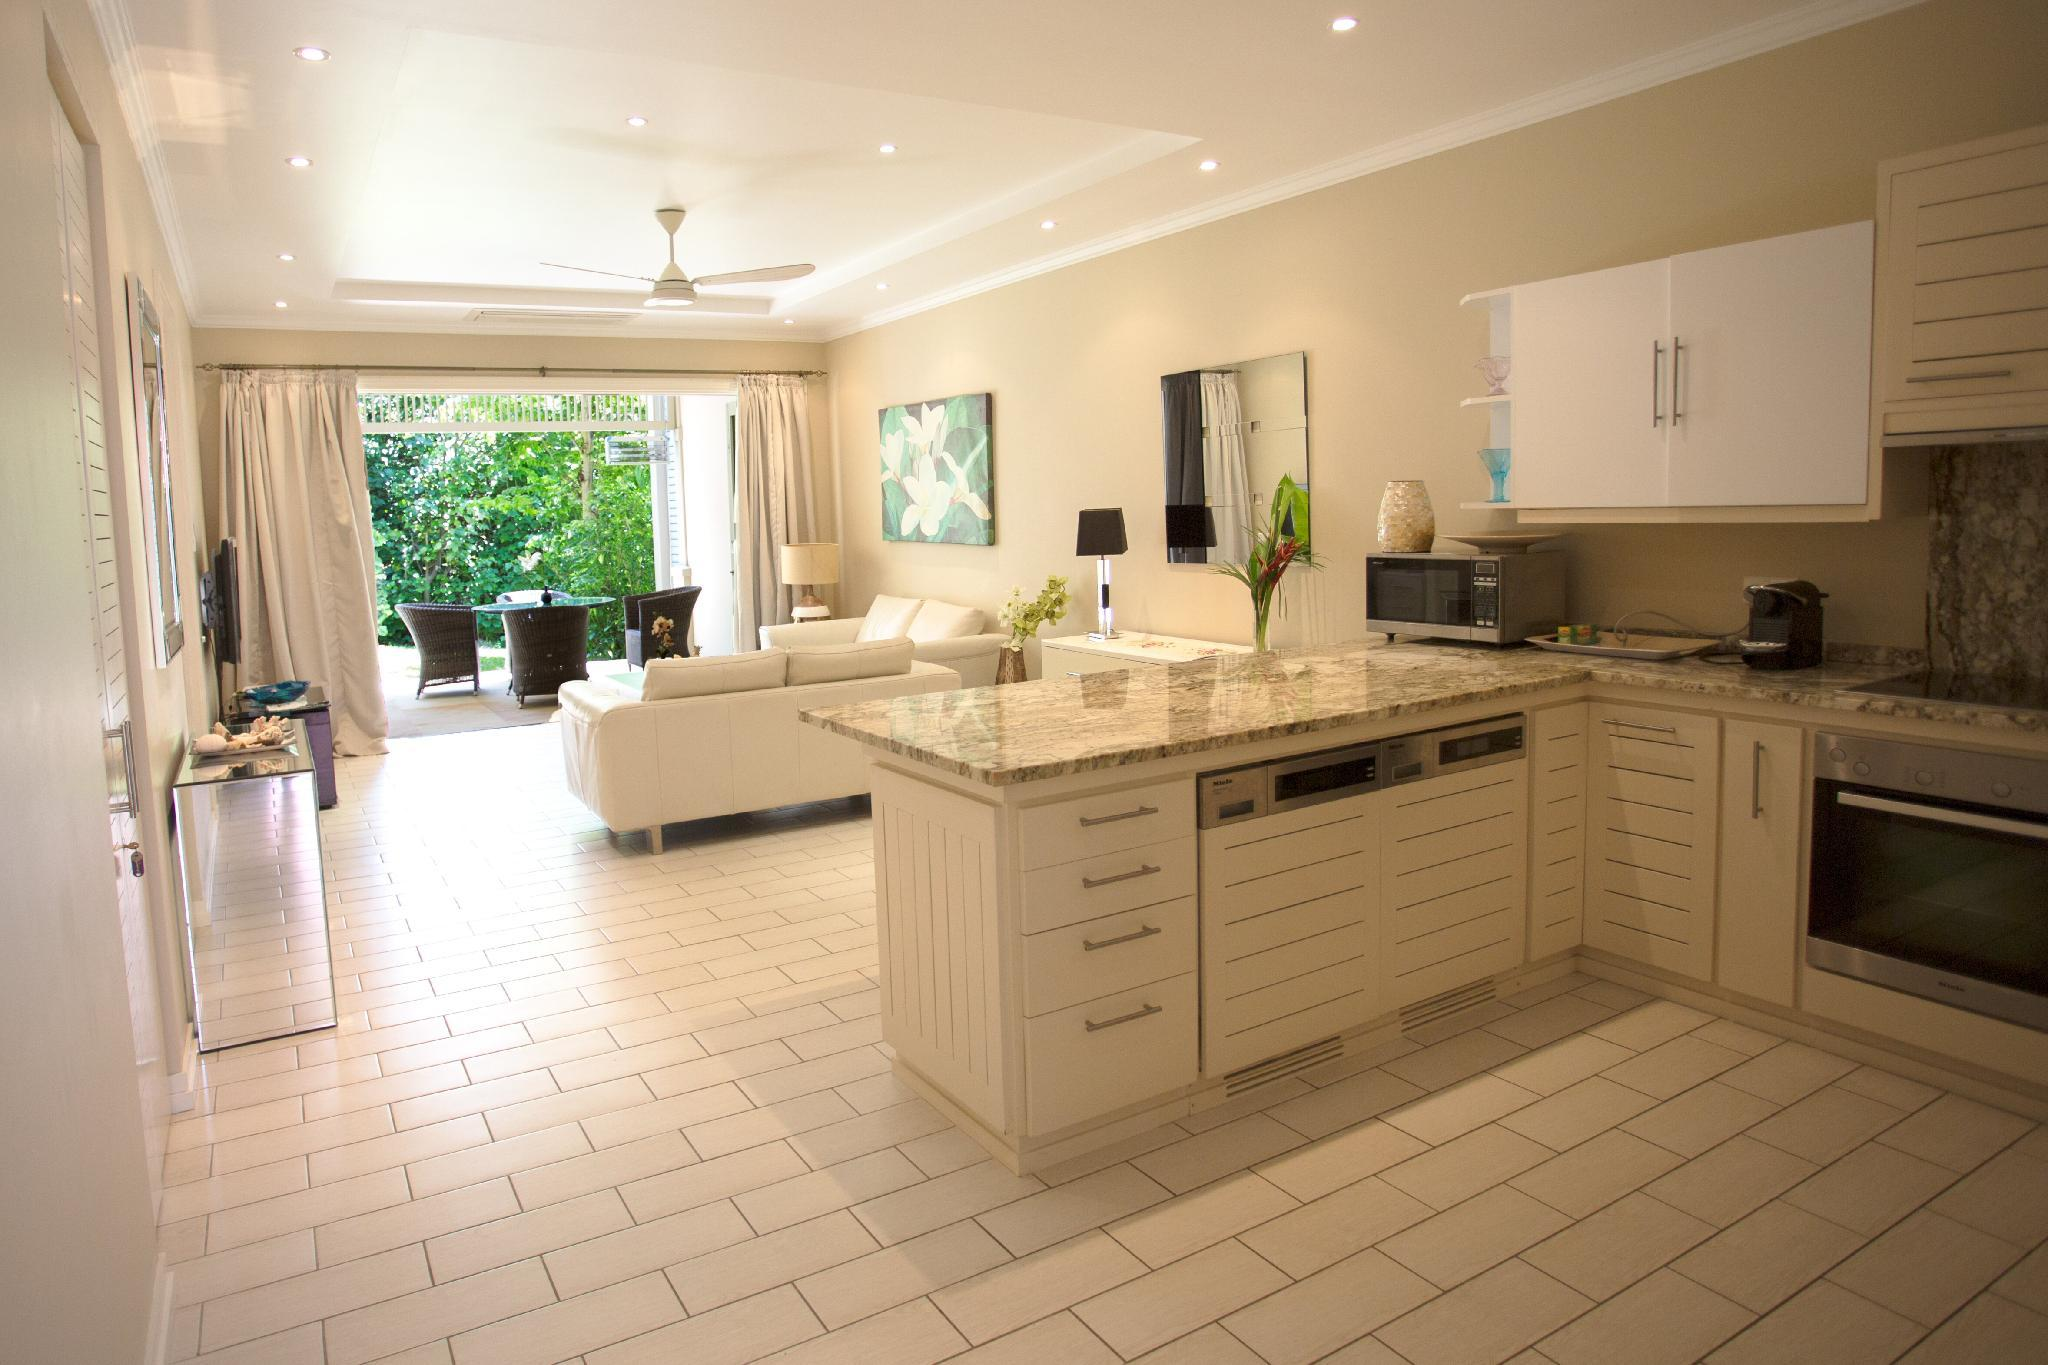 2 Bedroom Apartment With Garden And Beach Access